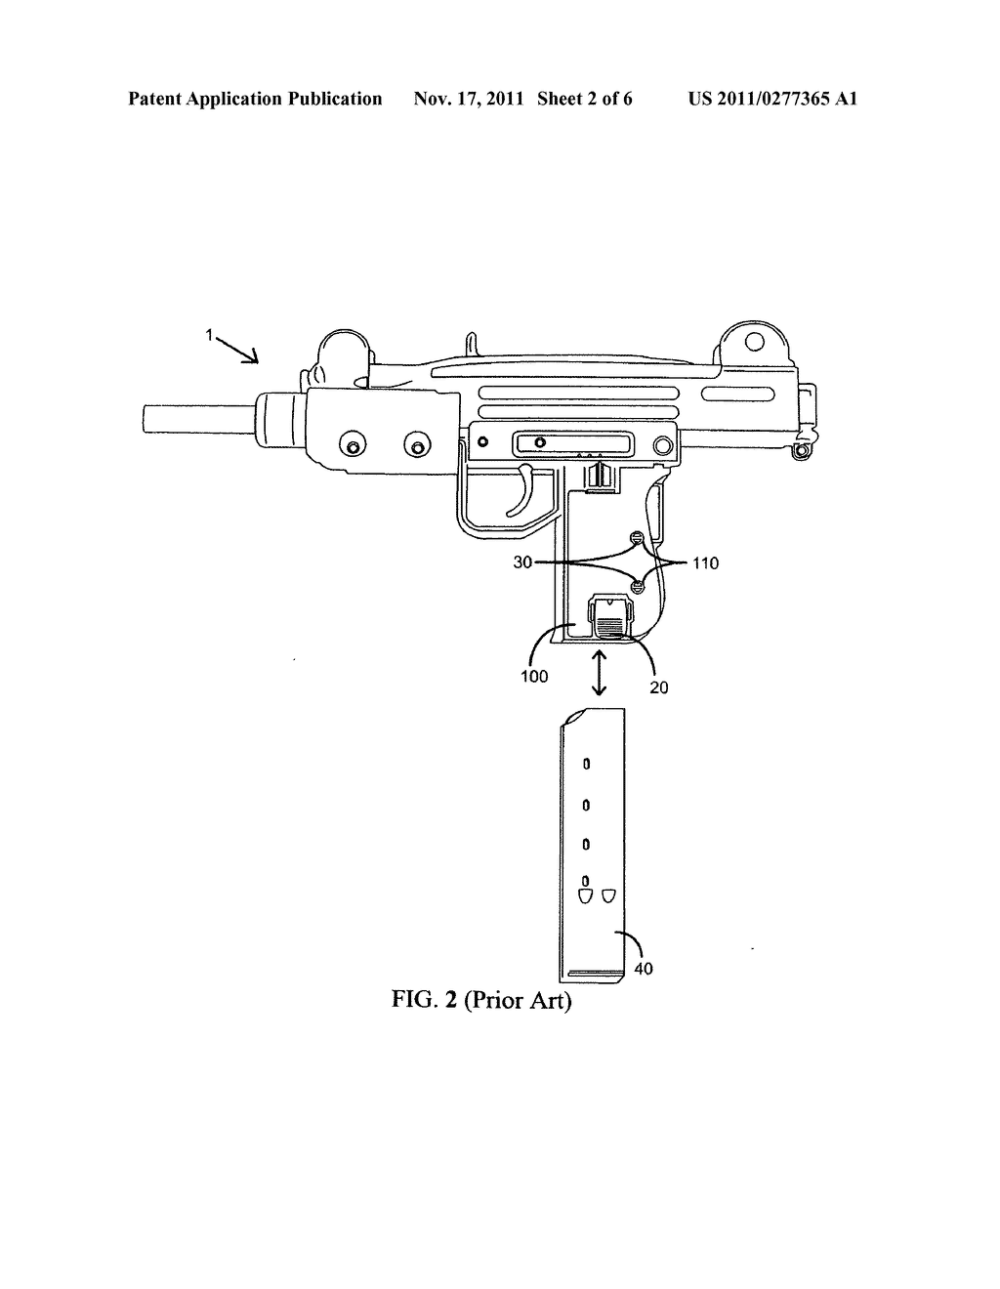 medium resolution of detachable magazine lock grip for uzi firearm diagram schematic and image 03